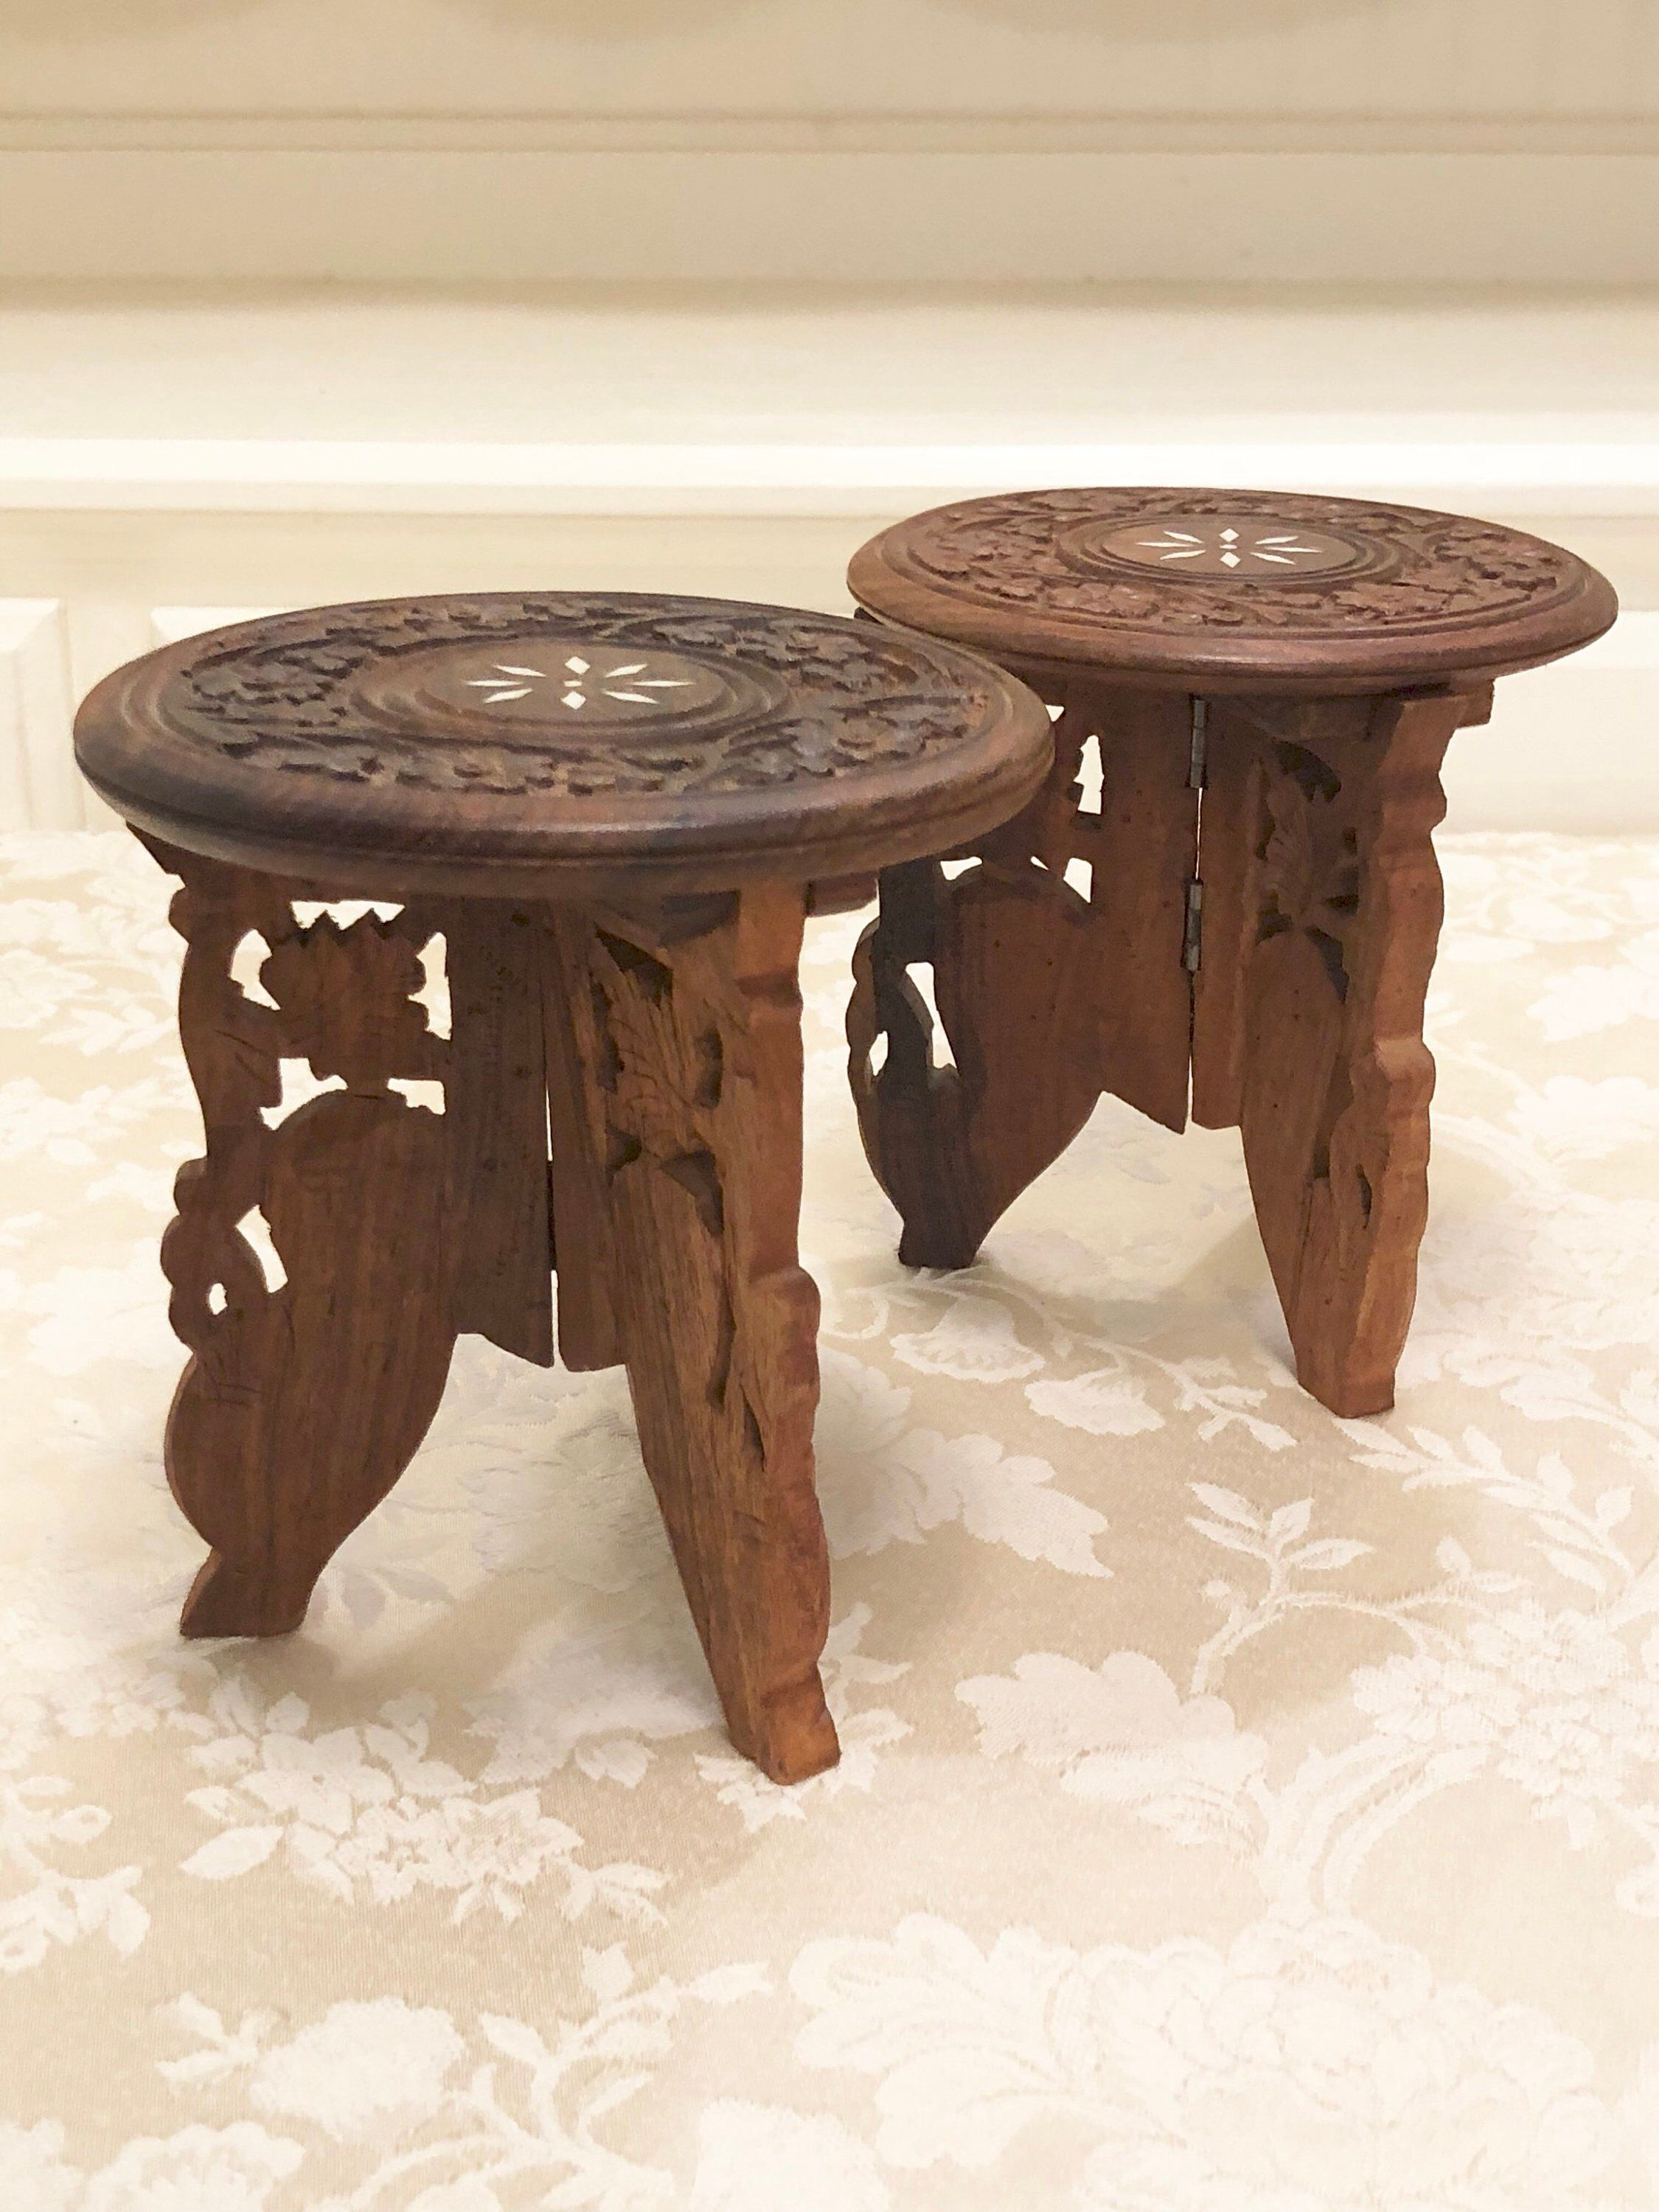 elegant carved wooden display candle holder small accent table shelf excited share this item from etsy yoga decor pottery barn patio furniture tall chairs reproduction designer